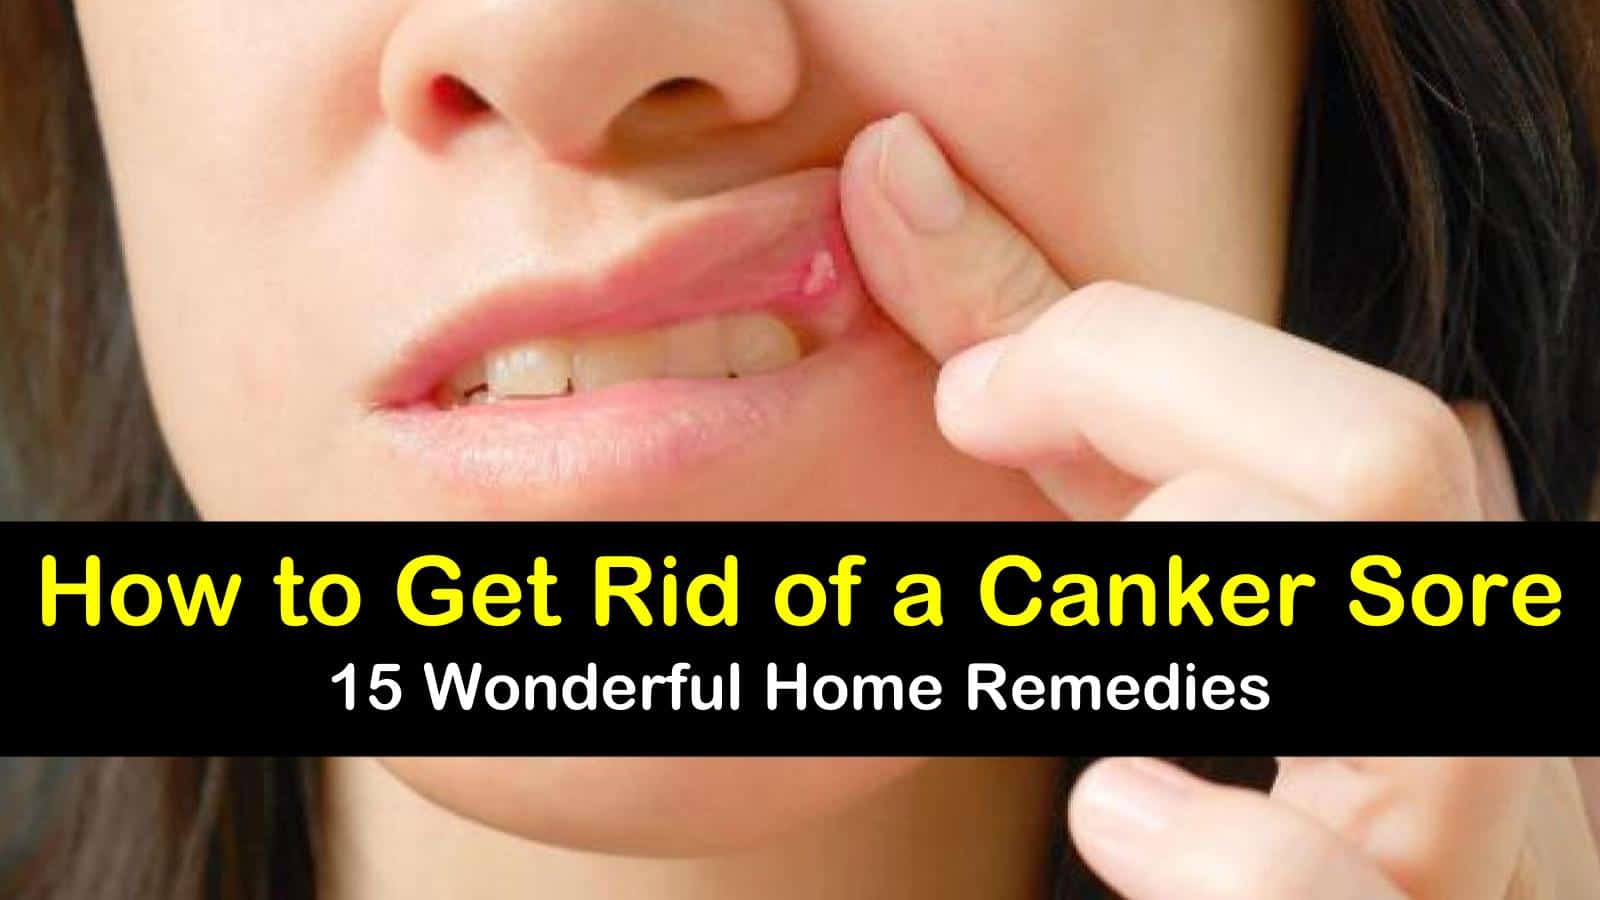 Want to know how to get rid of a canker sore? Check out these 15 home remedies.